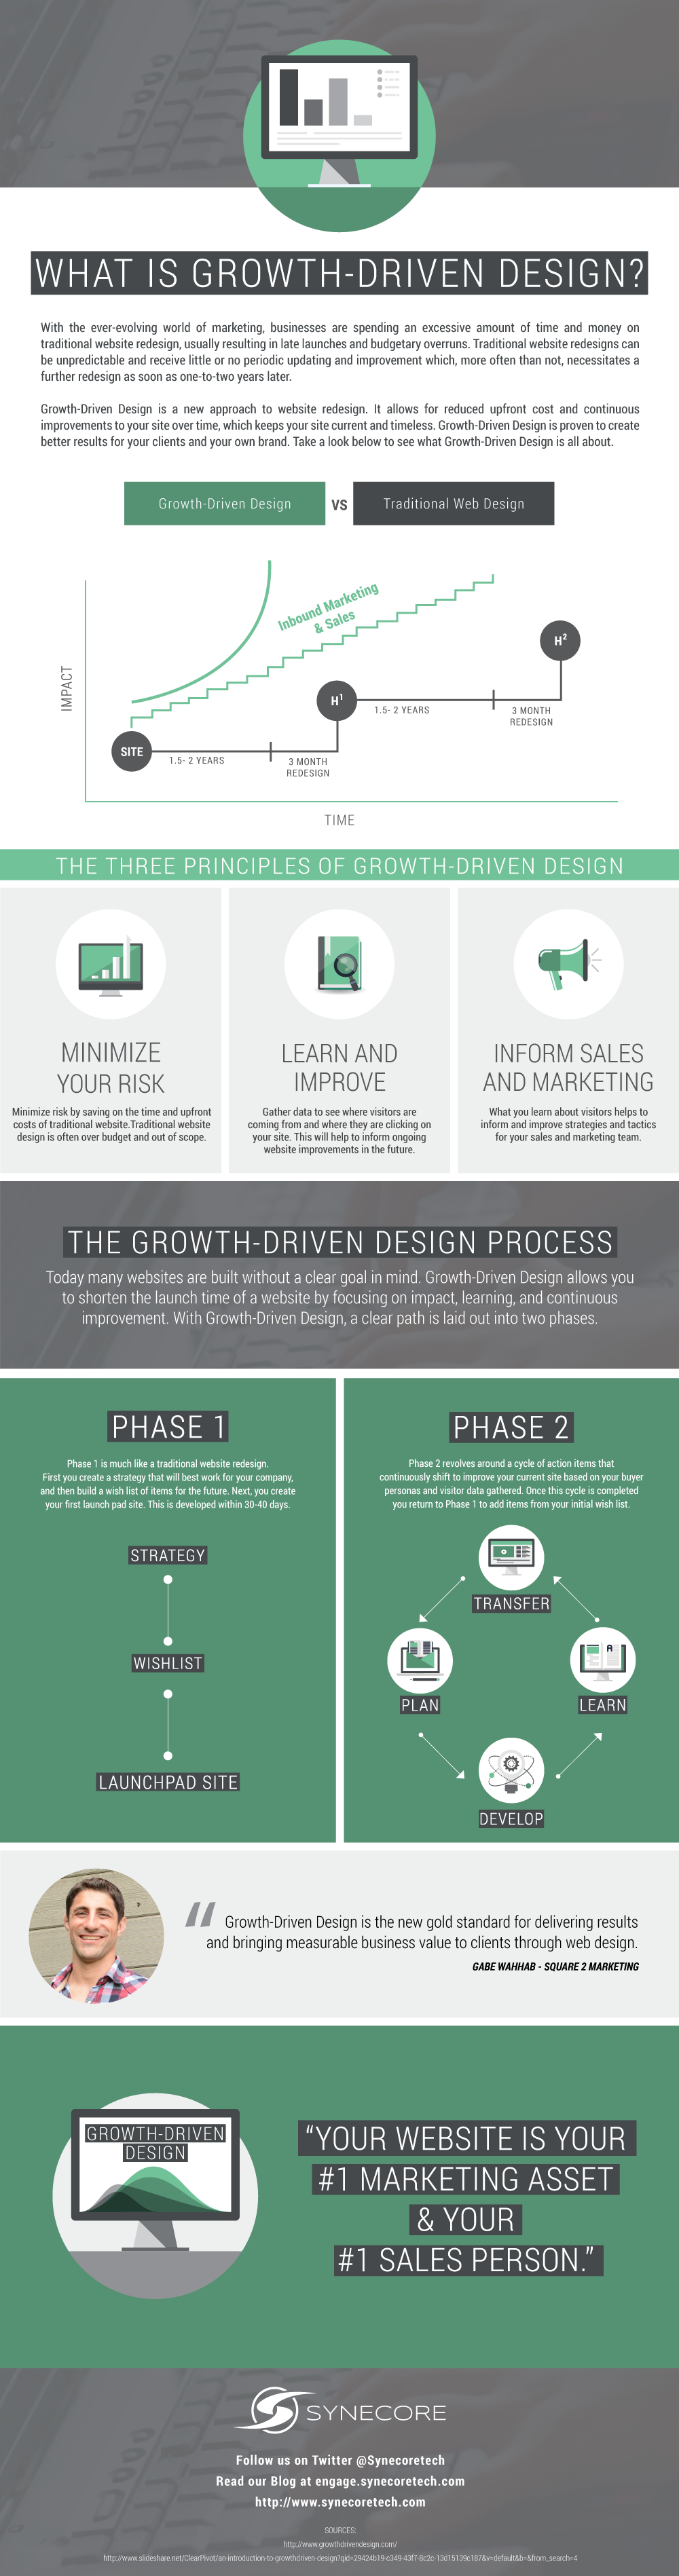 What is Growth-Driven Design? #Infographic